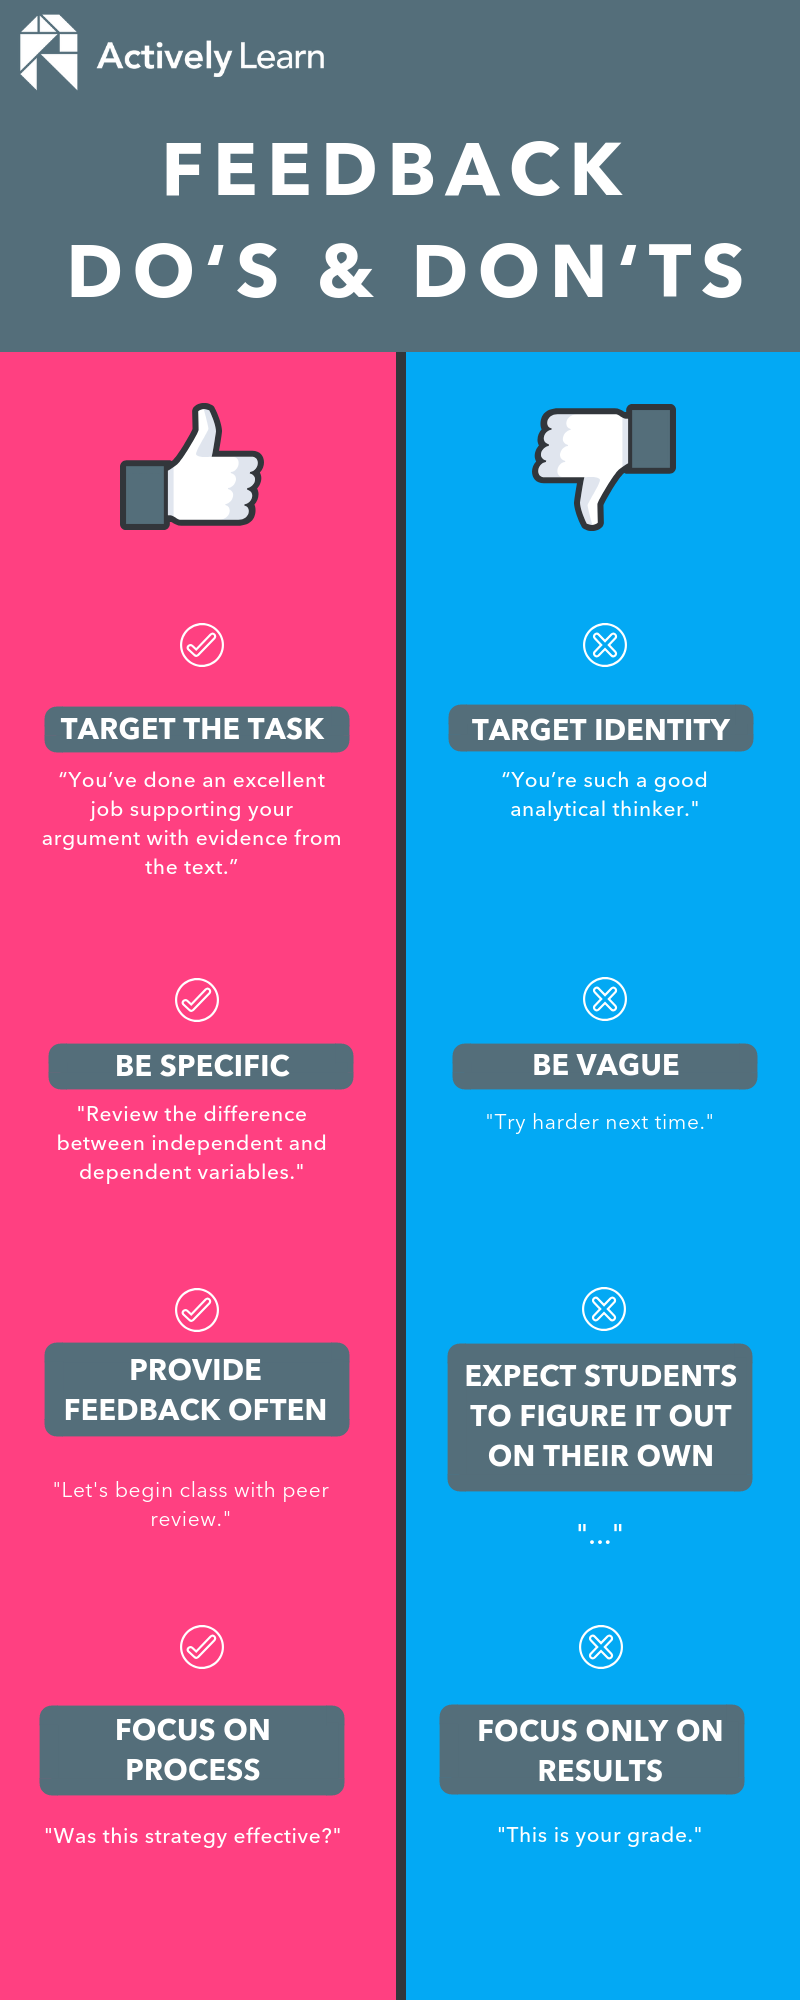 Feedback do's and don'ts for deeper learning